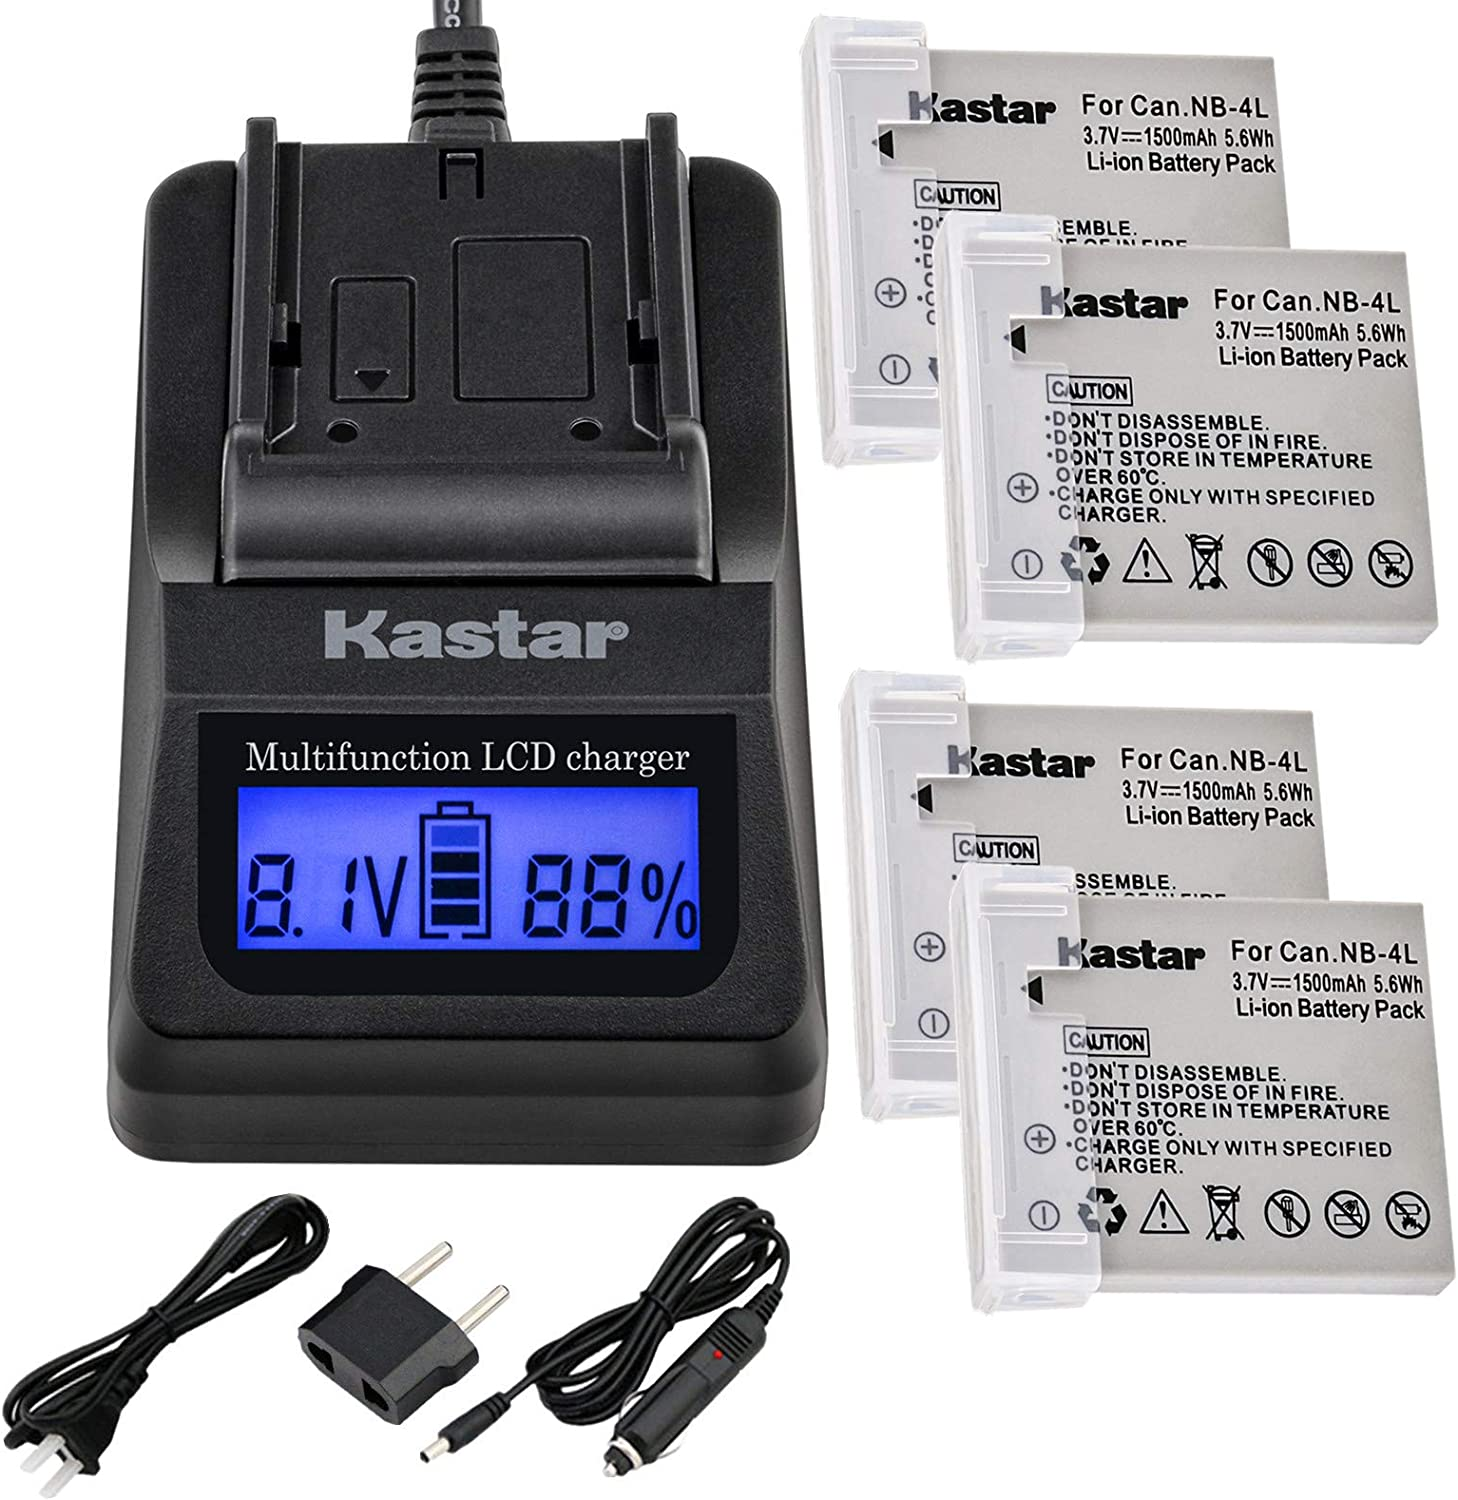 Kastar Ultra Fast Charger Minneapolis Mall 3X Faster fo 4-Pack Kit and Battery Minneapolis Mall